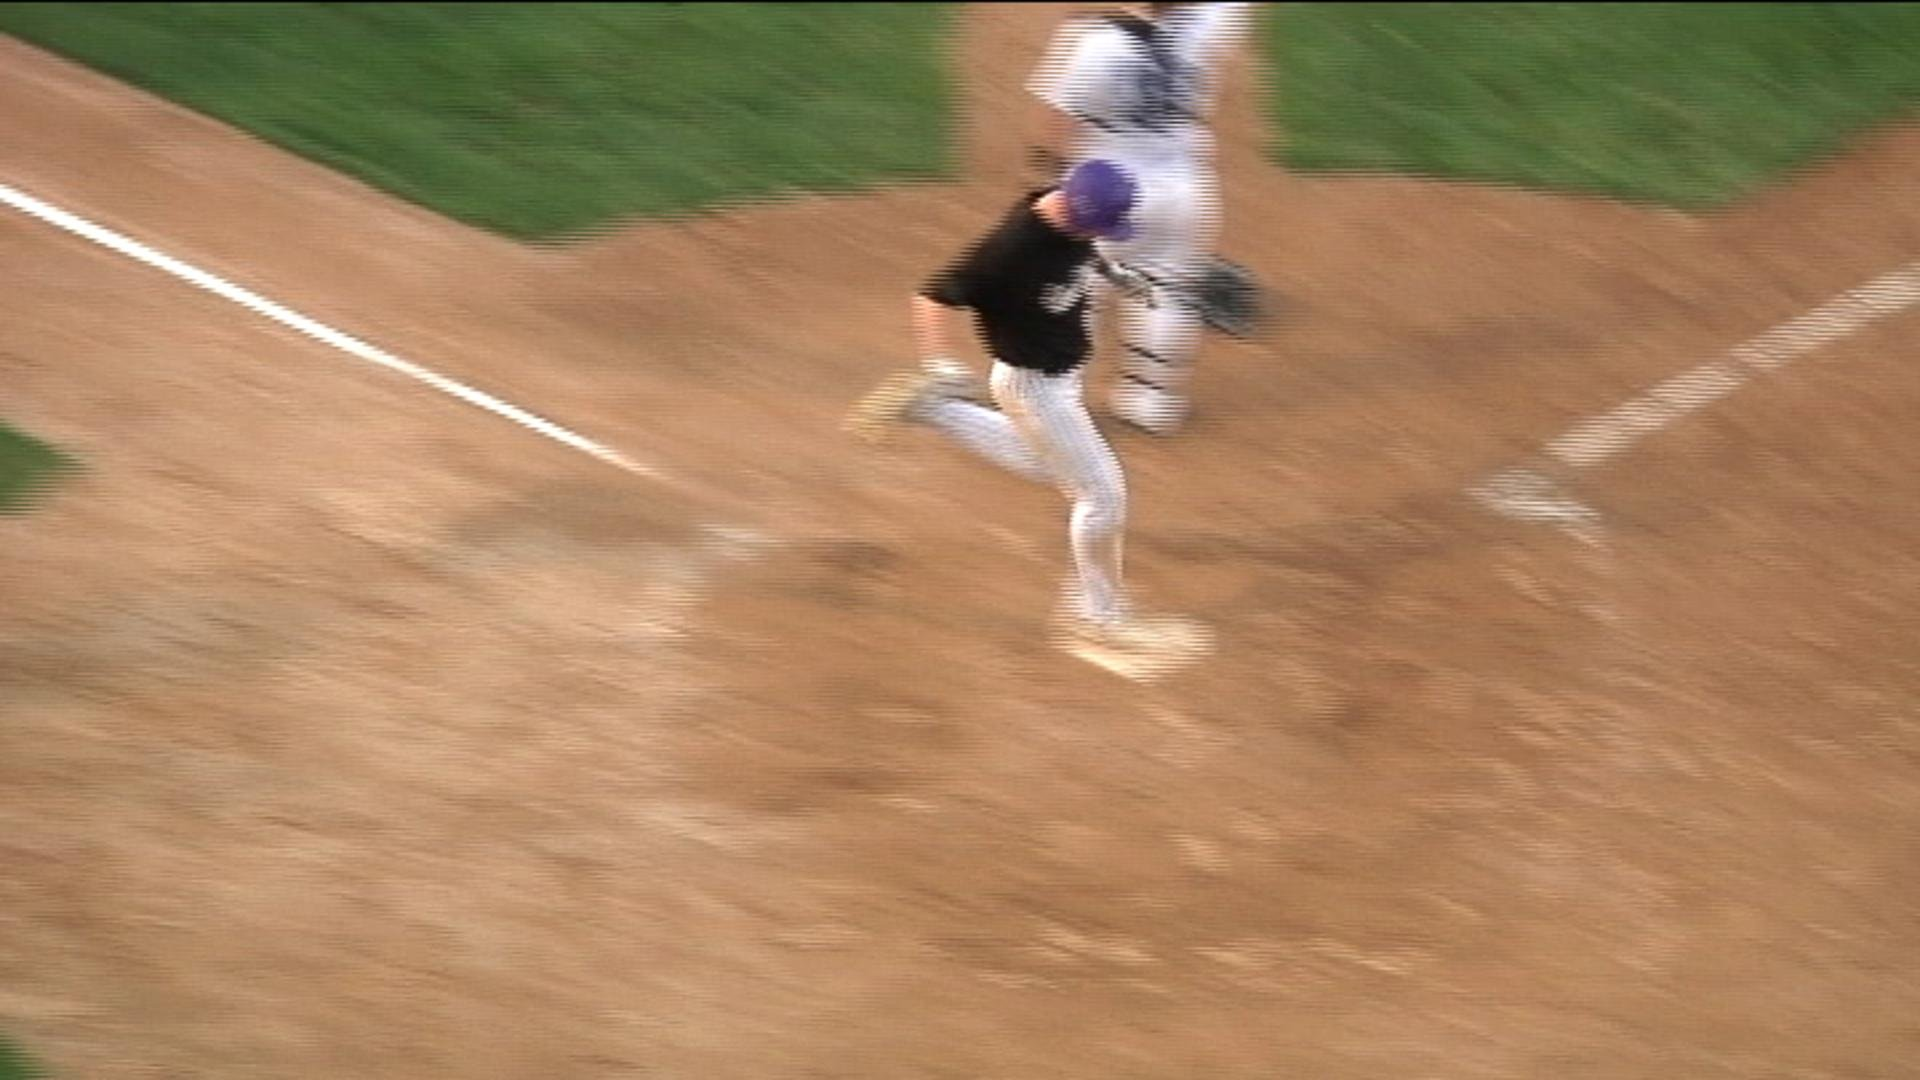 Vincent Trapani scores EC Memorial's 3rd run as the Old Abes blank EC North